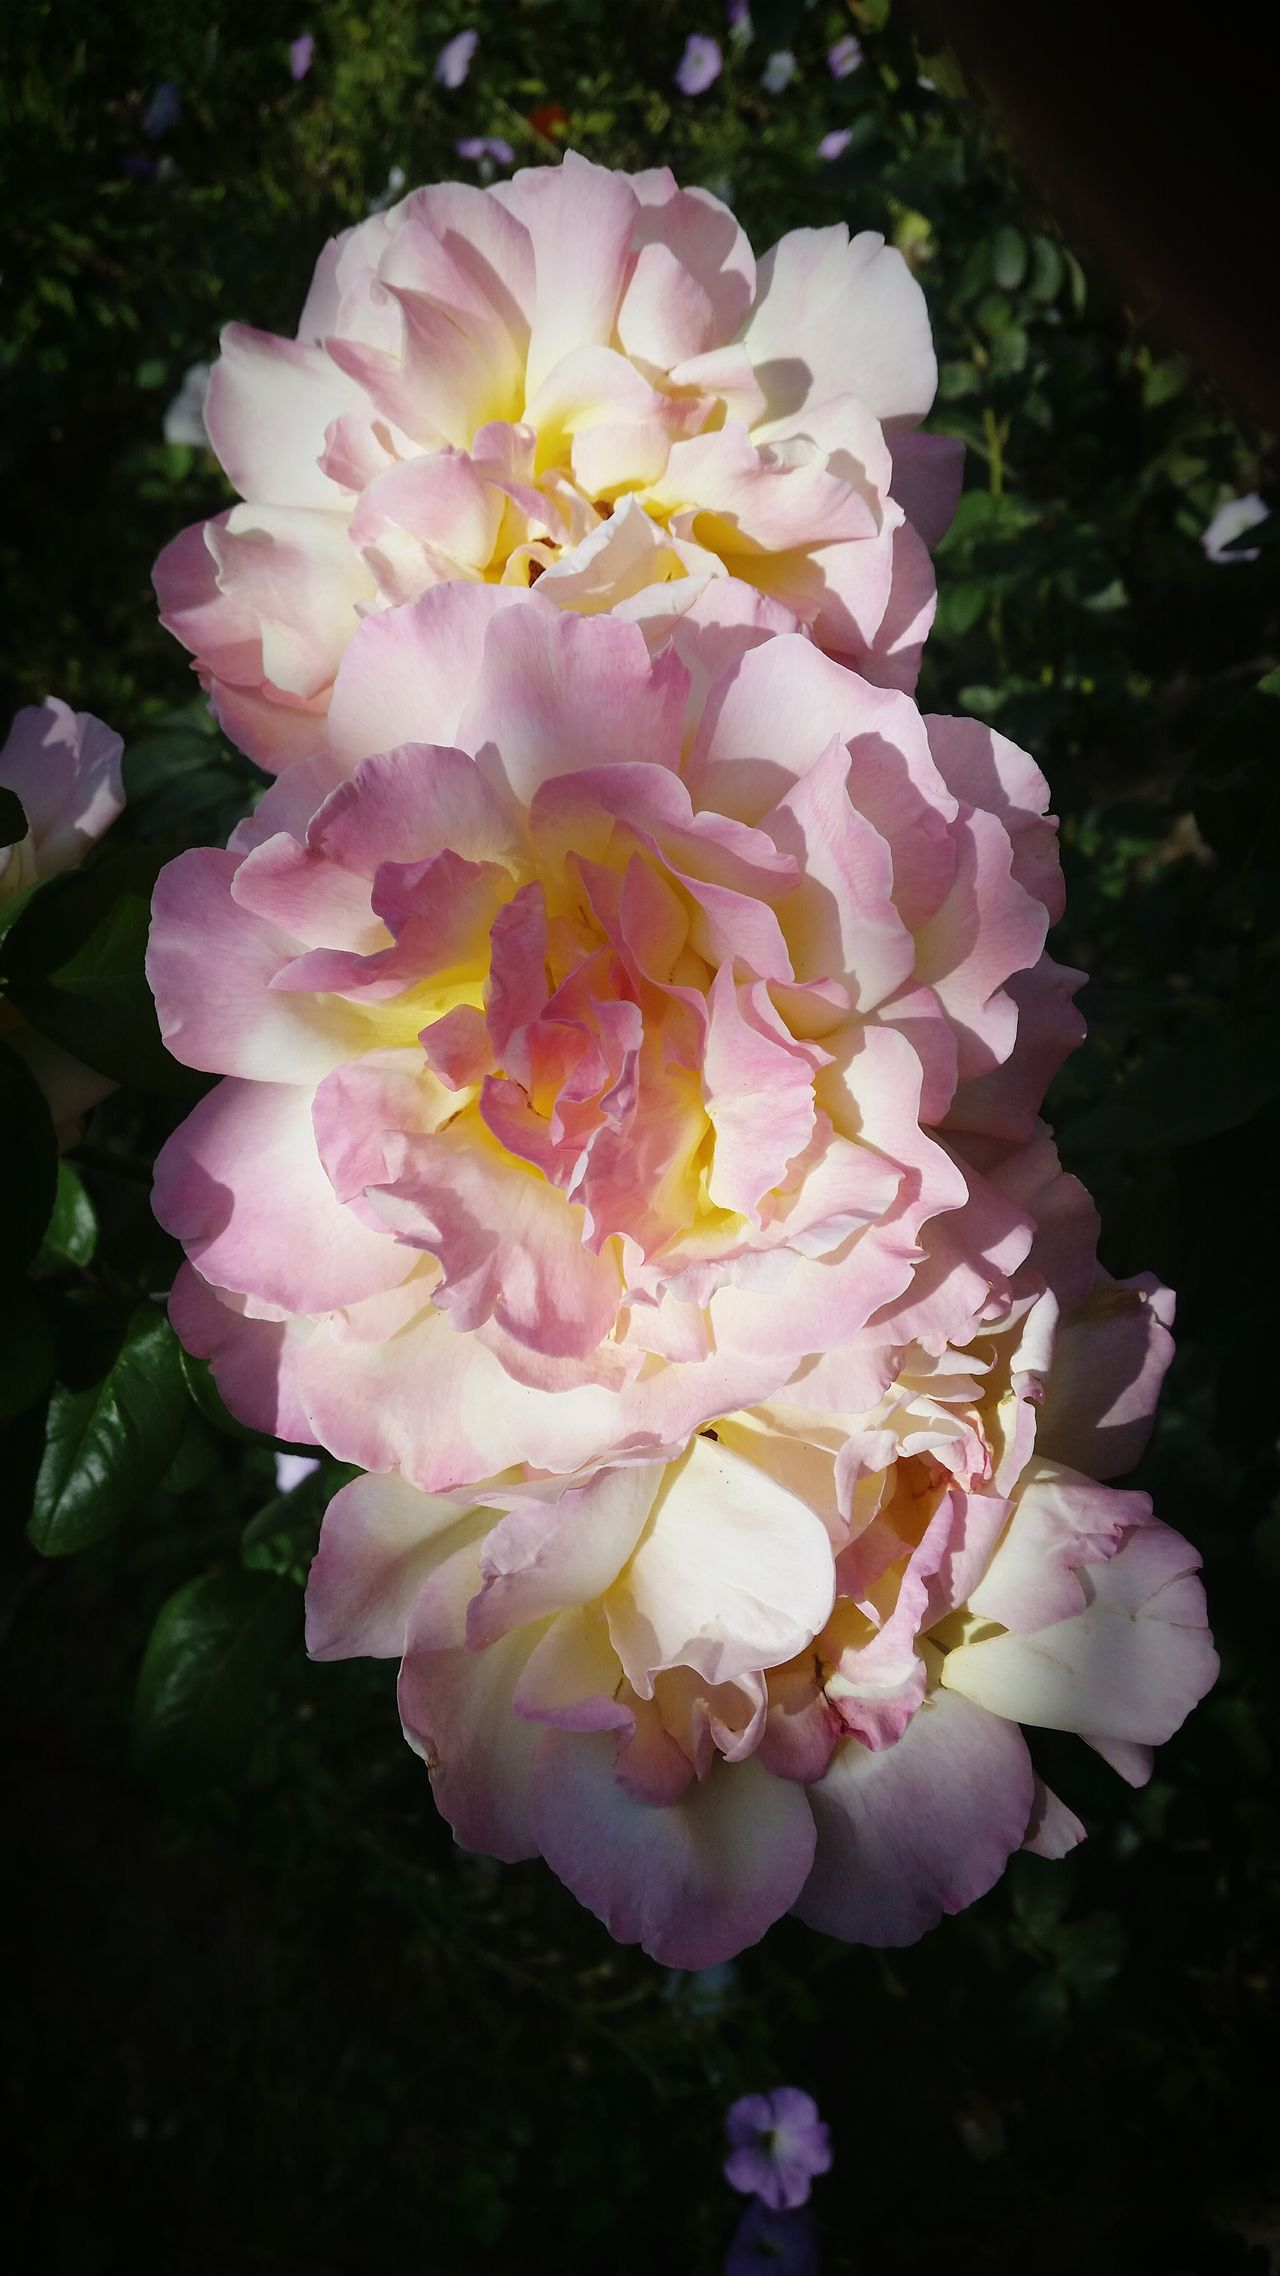 Beauty In Nature Flower Nature Pink Color Close-up Petal Flower Head Outdoors Freshness Growth No People Fragility Flowers Rose - Flower Rose🌹 Roses Roses Flowers  Roses🌹